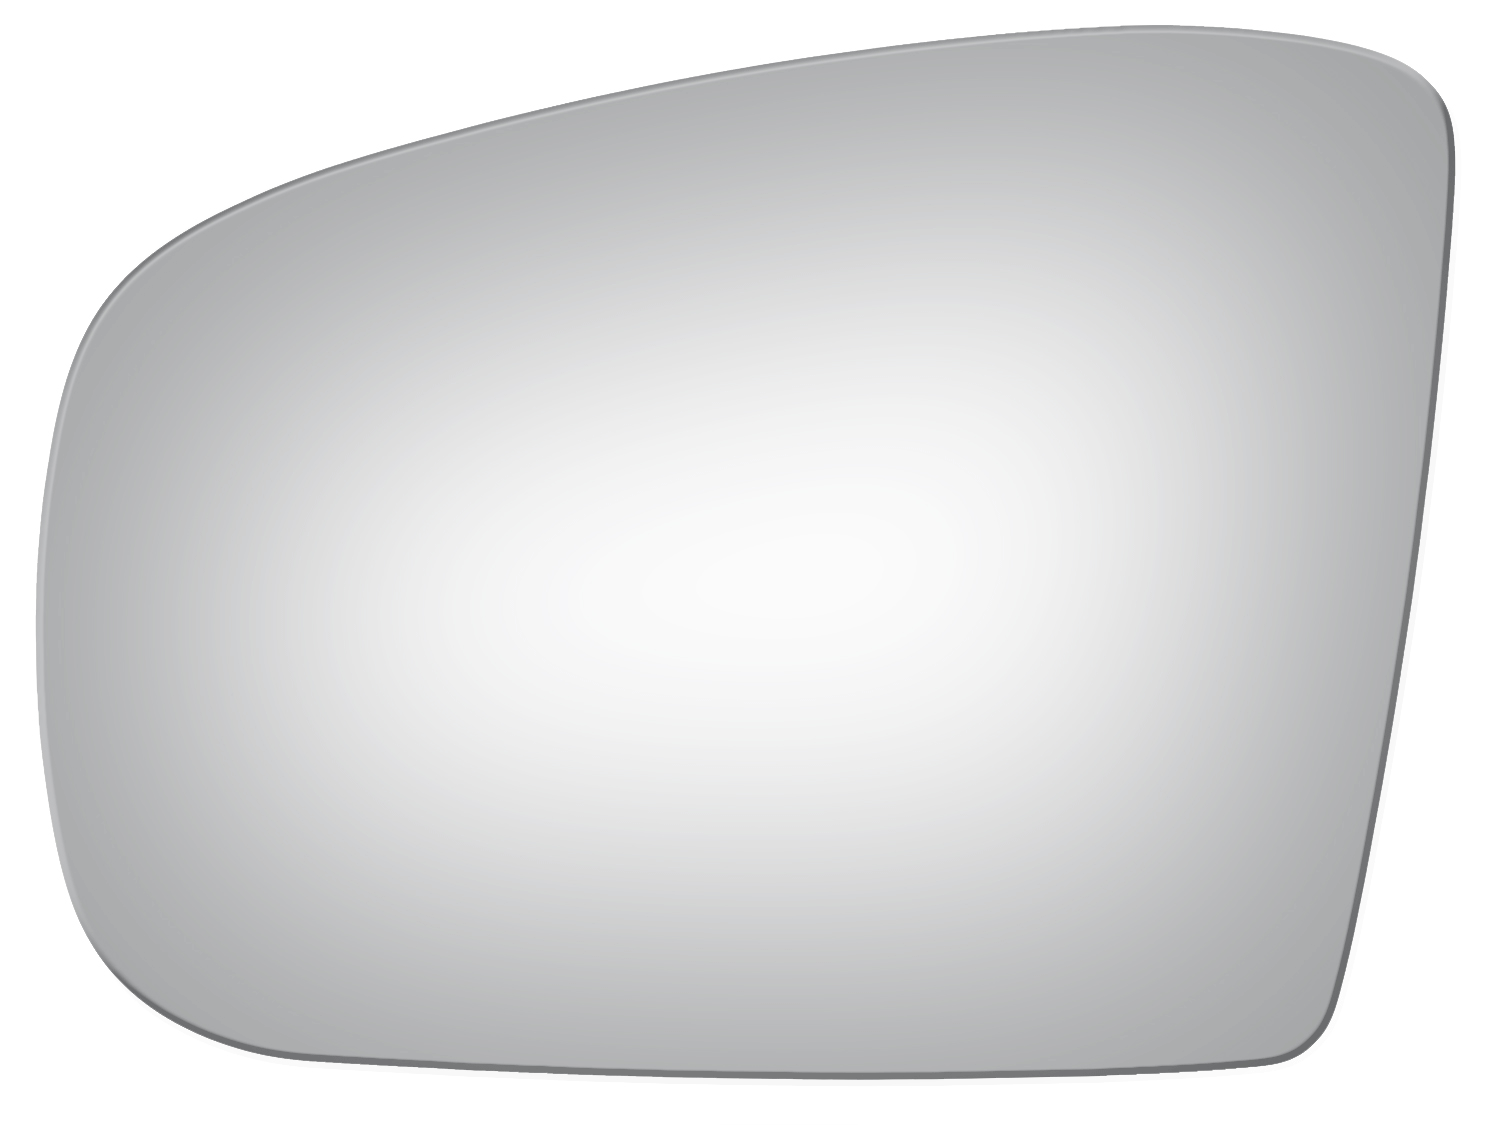 Mercedes benz ml320 2002 driver side mirror glass for Mercedes benz side mirror price